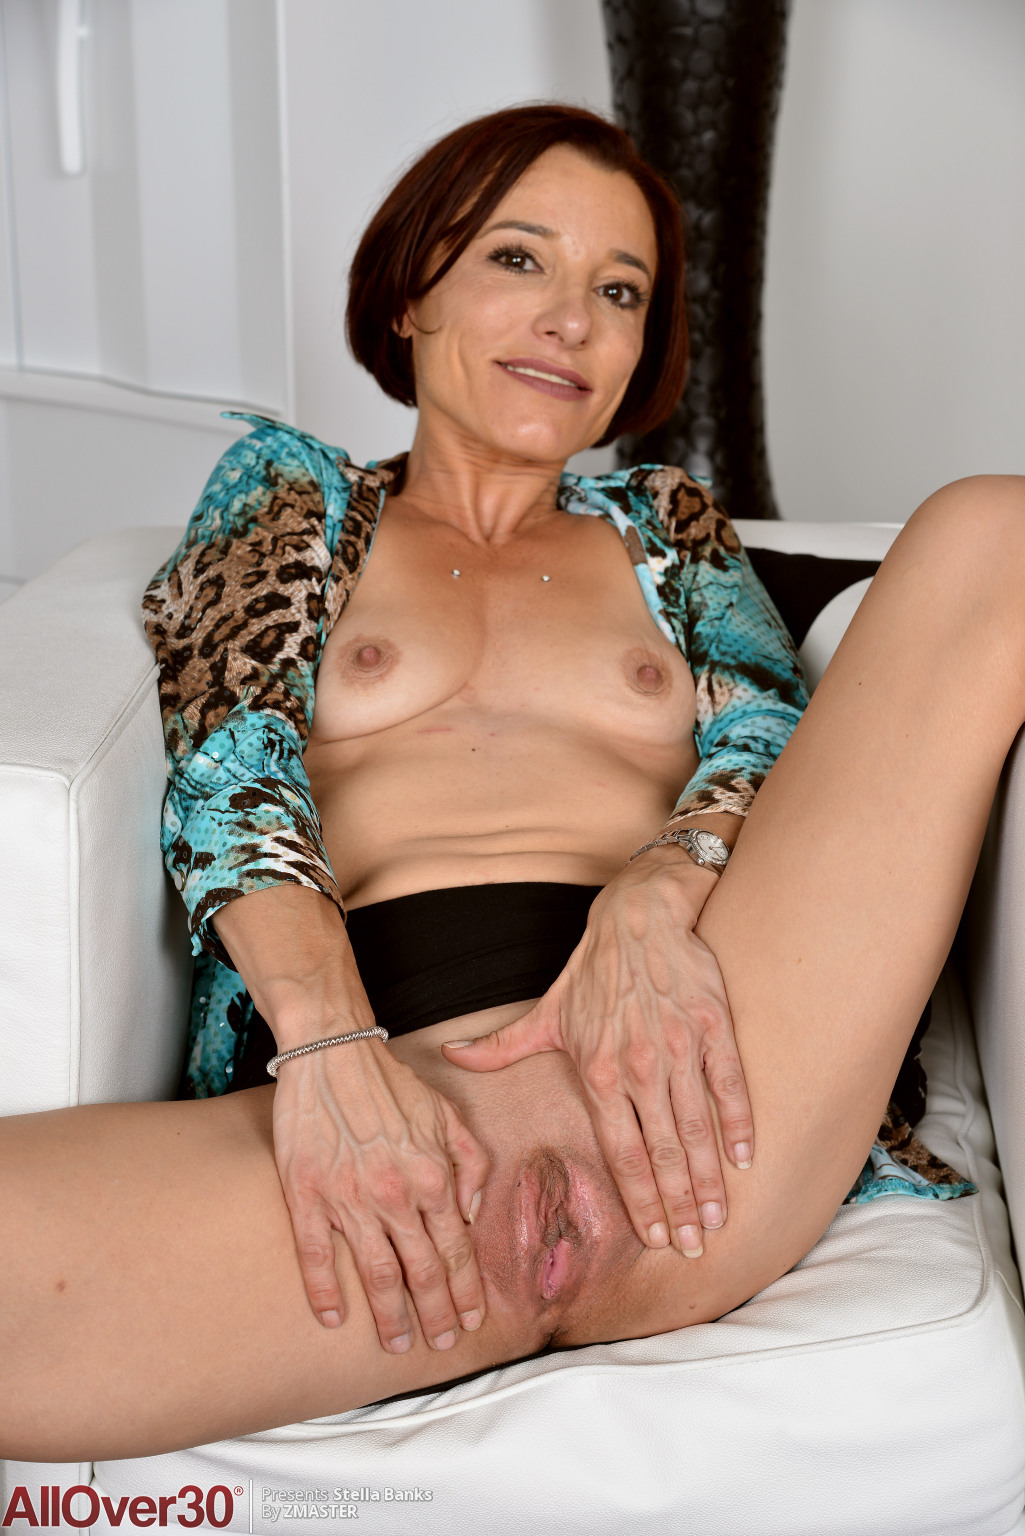 stella-banks-slender-mature-housewife-06